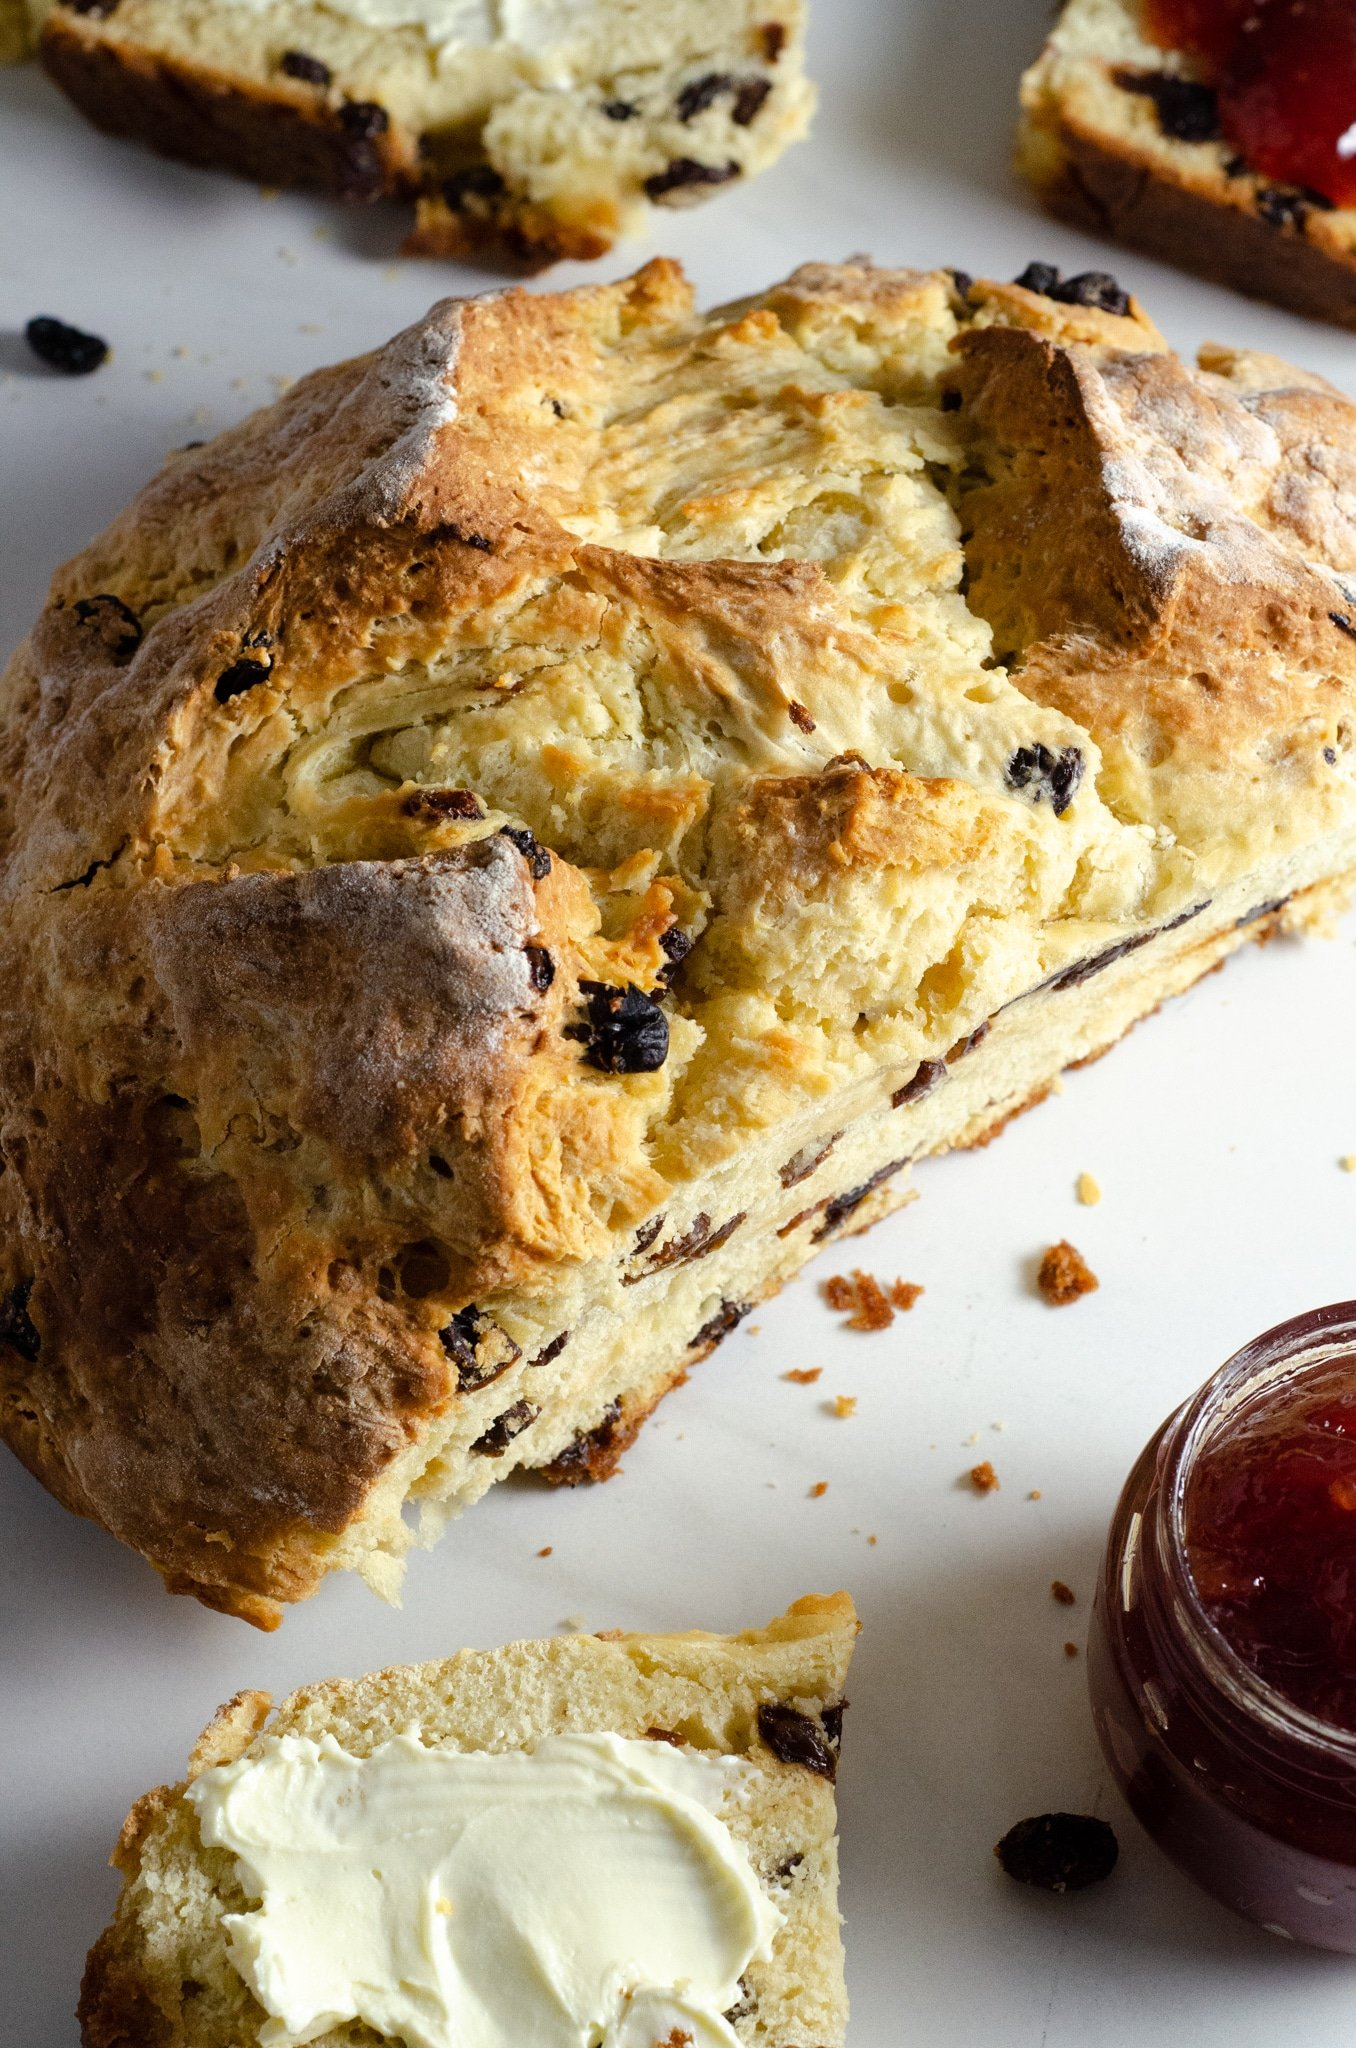 Irish Soda Bread Loaf. This Irish Soda Bread is a quick and easy bread recipe you can whip together and spoil your family with. Also known as quick bread, It's a no yeast bread recipe that will take over your home with the sweet smell of fresh-baked bread.